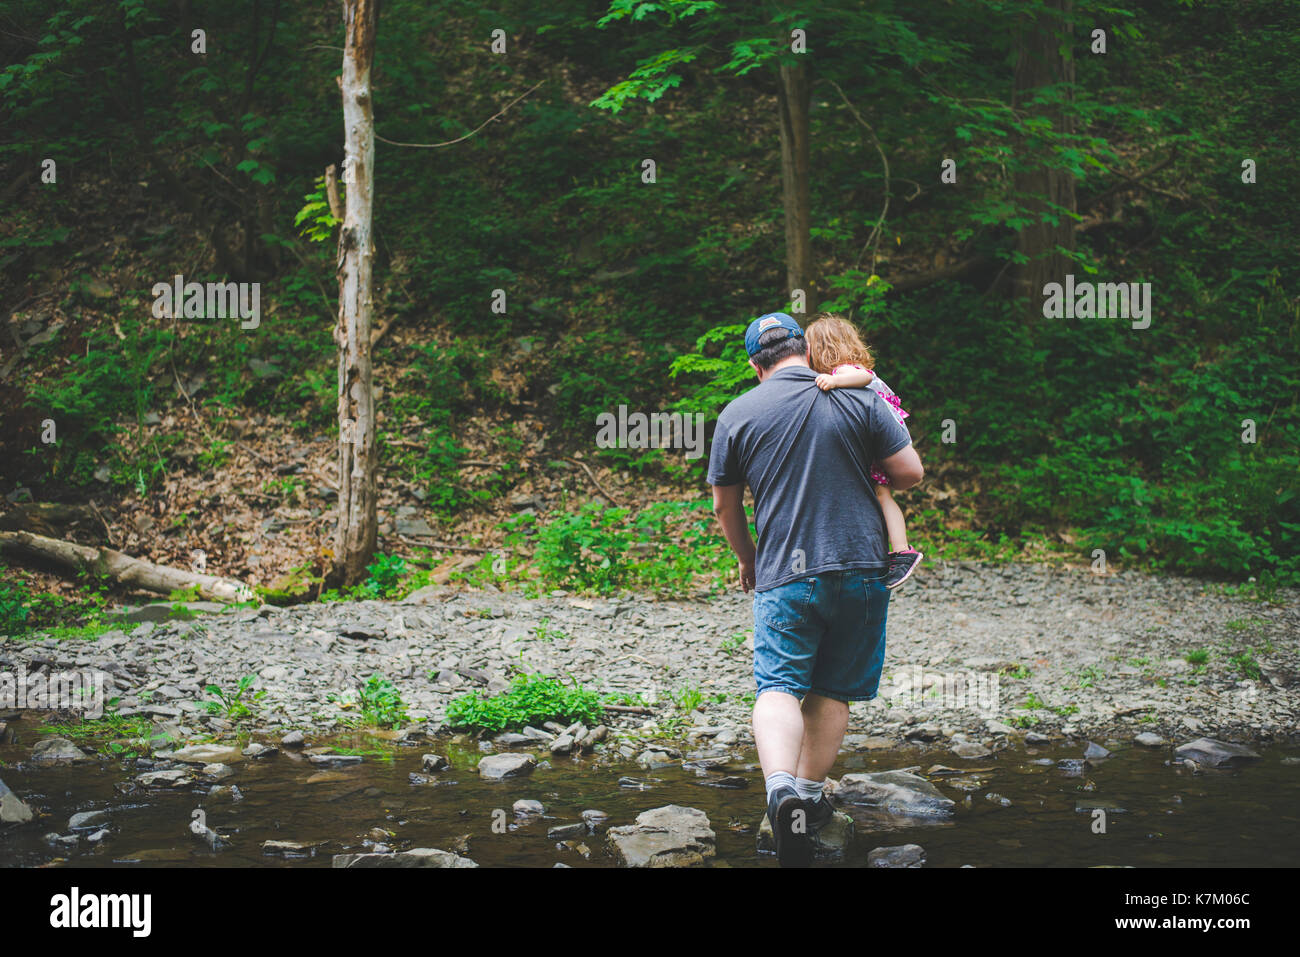 A father carries his daughter during a hike in the woods. - Stock Image